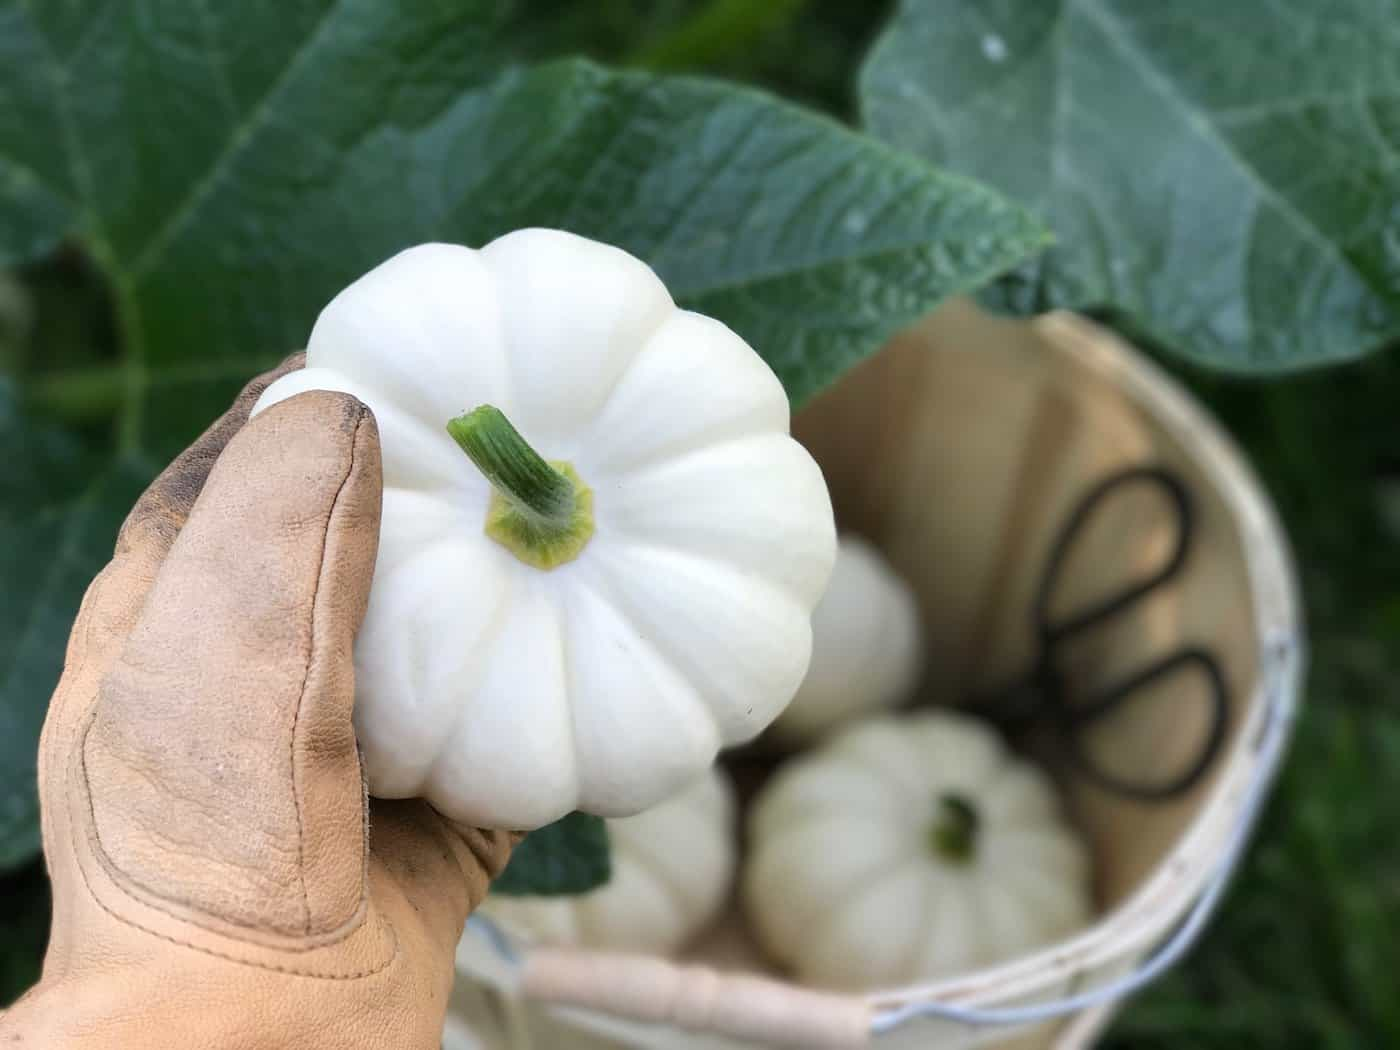 Pumpkins are easy to grow with the right instructions! Here's how to grow organic pumpkins - everything you need to know | Home for the Harvest #pumpkin #pumpkins #organicpumpkin #organicpumpkins #growpumpkins #howtogrowpumpkins #organicgardening #homefortheharvest